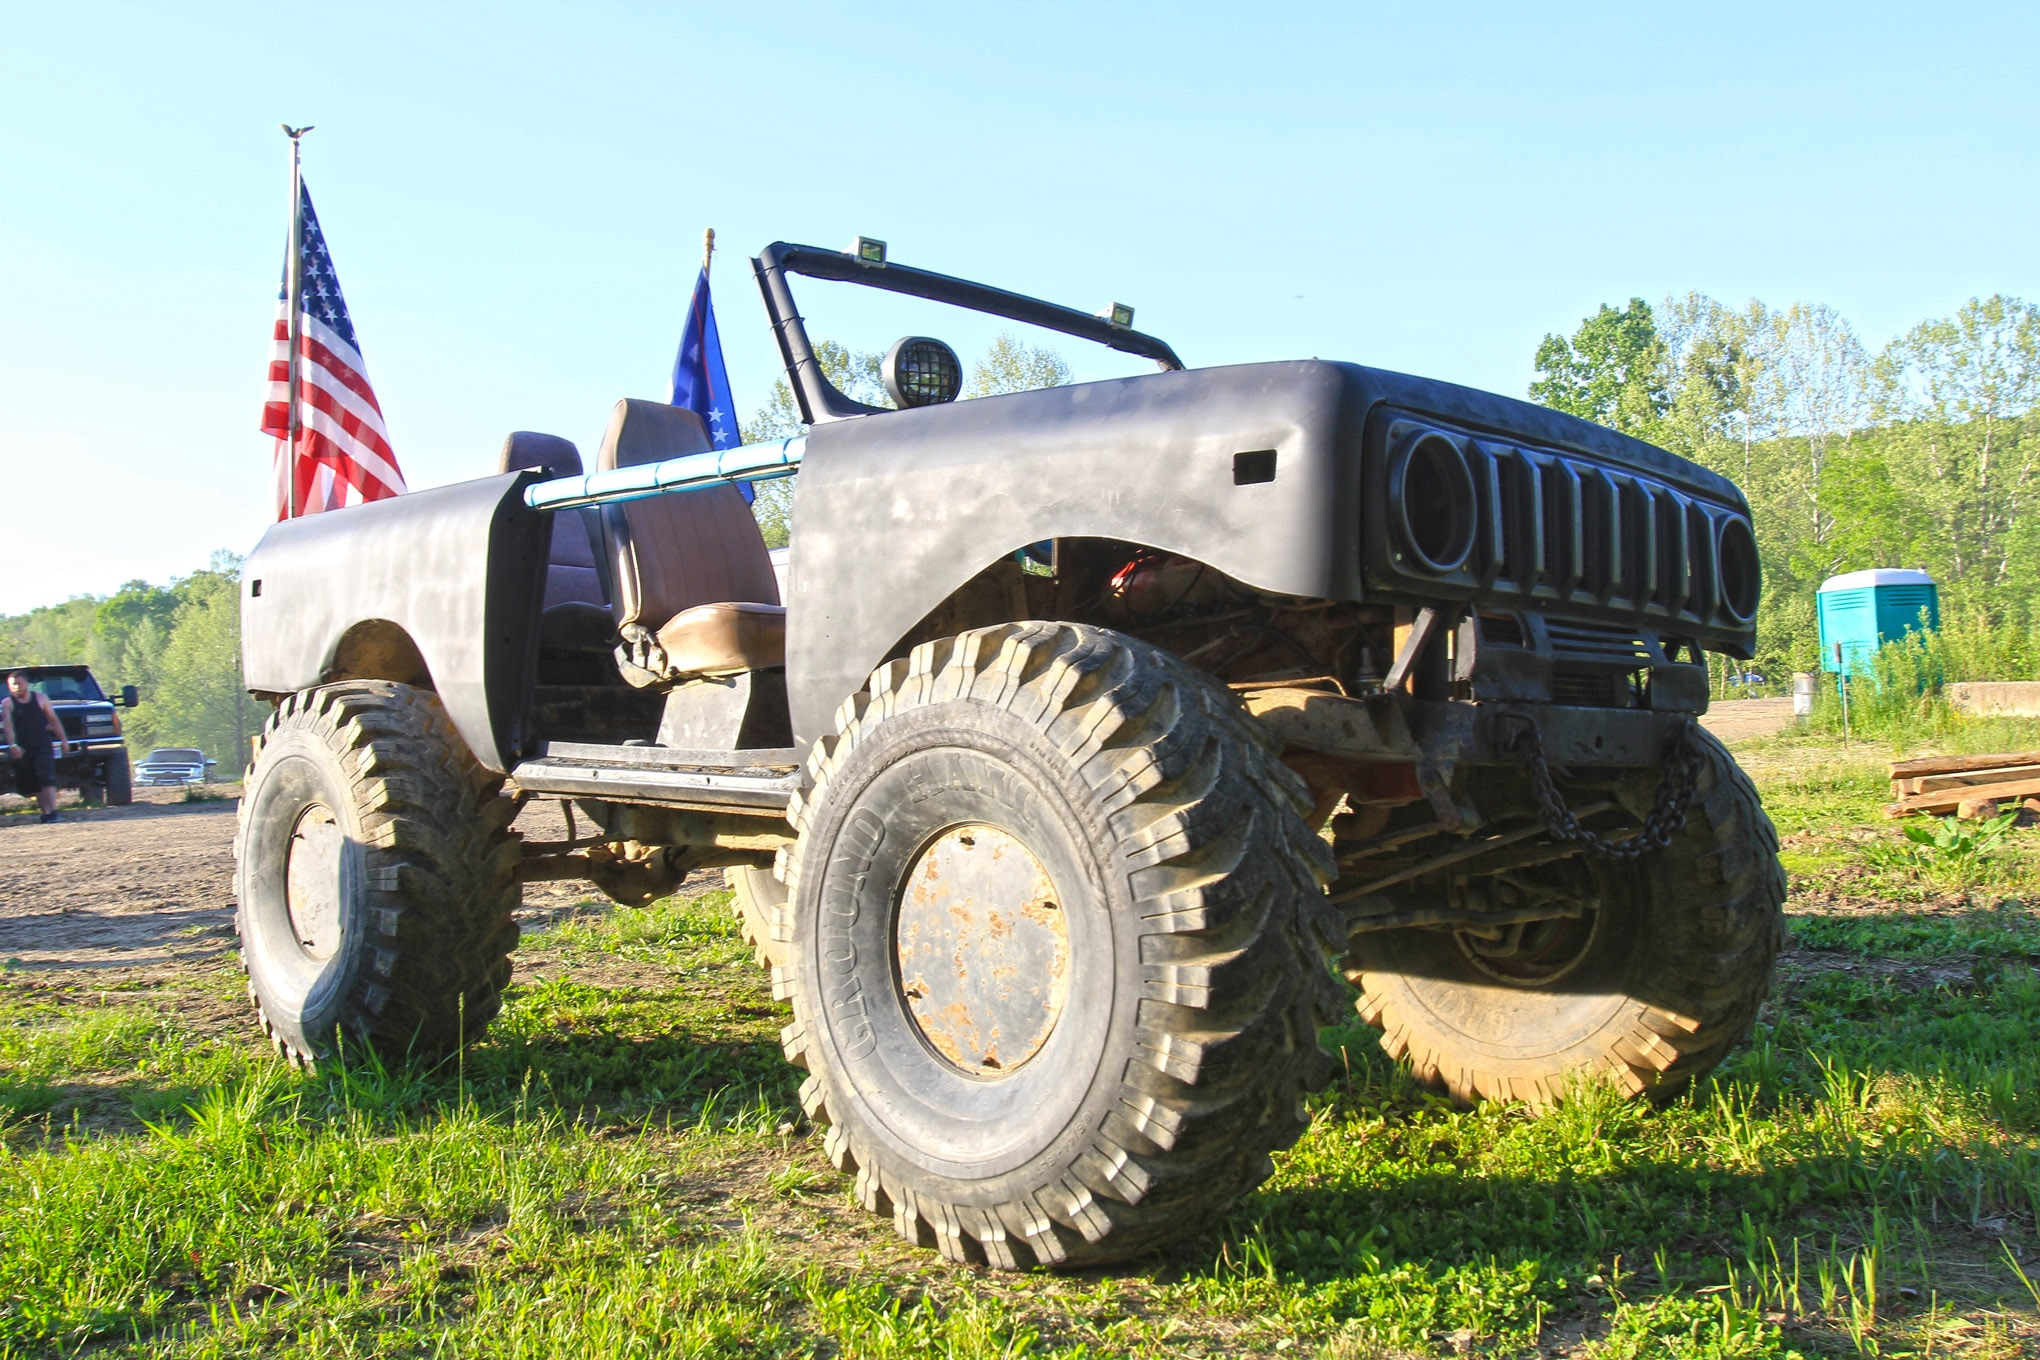 After some bodywork and 44-inch Ground Hawgs, this '79 Scout II was more than ready to tear through the mud.